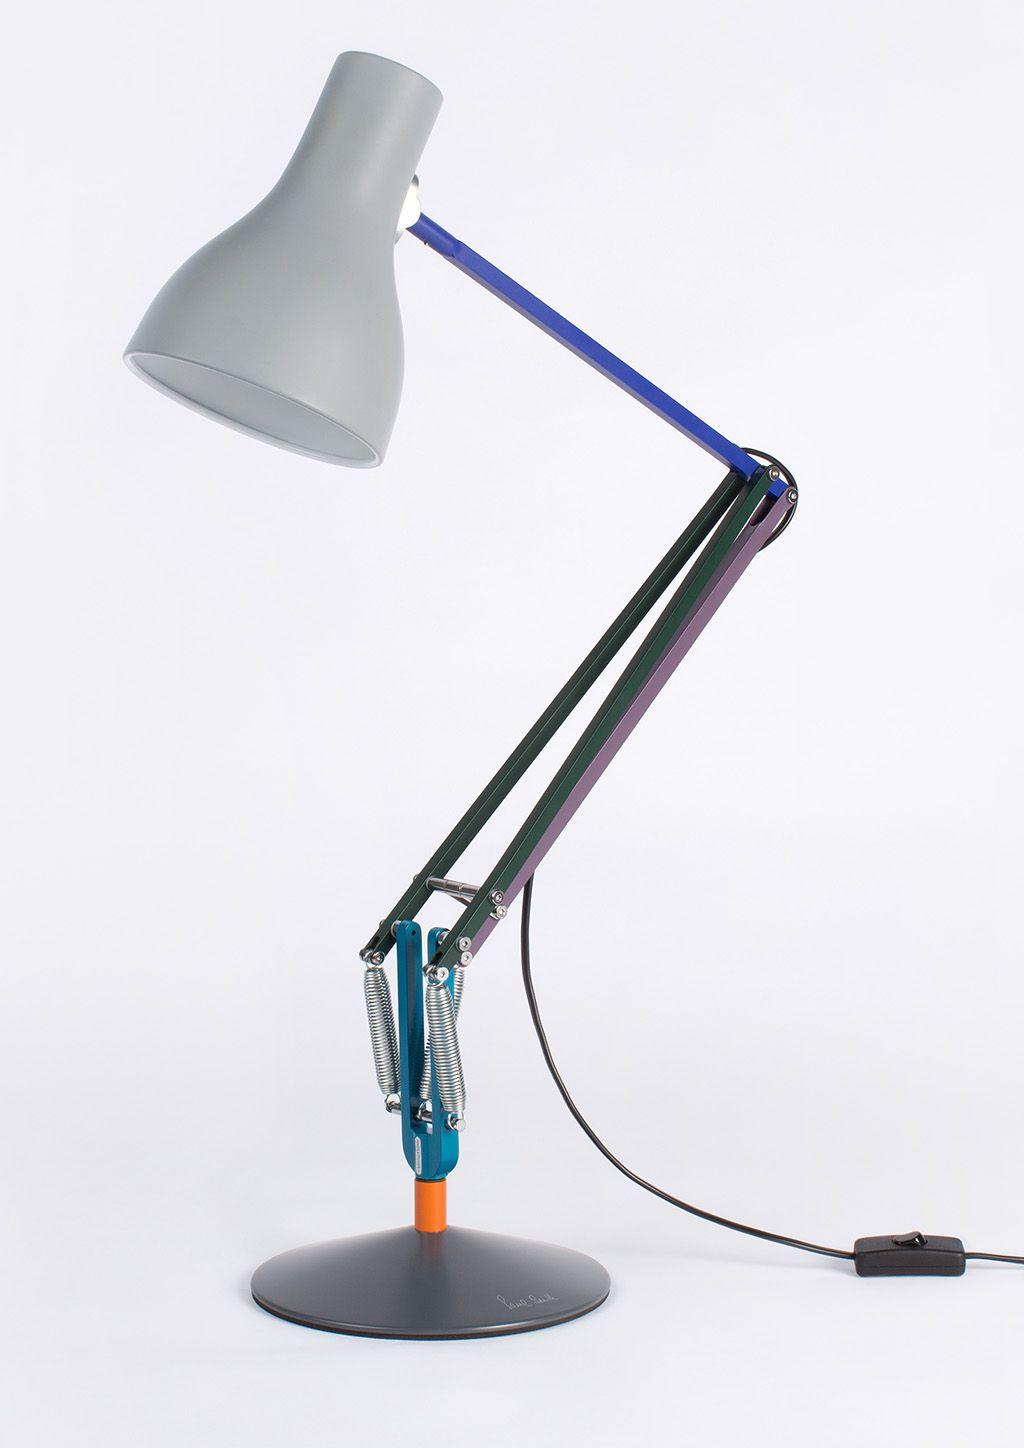 Paul smith designs second edition of popular anglepoise type desk